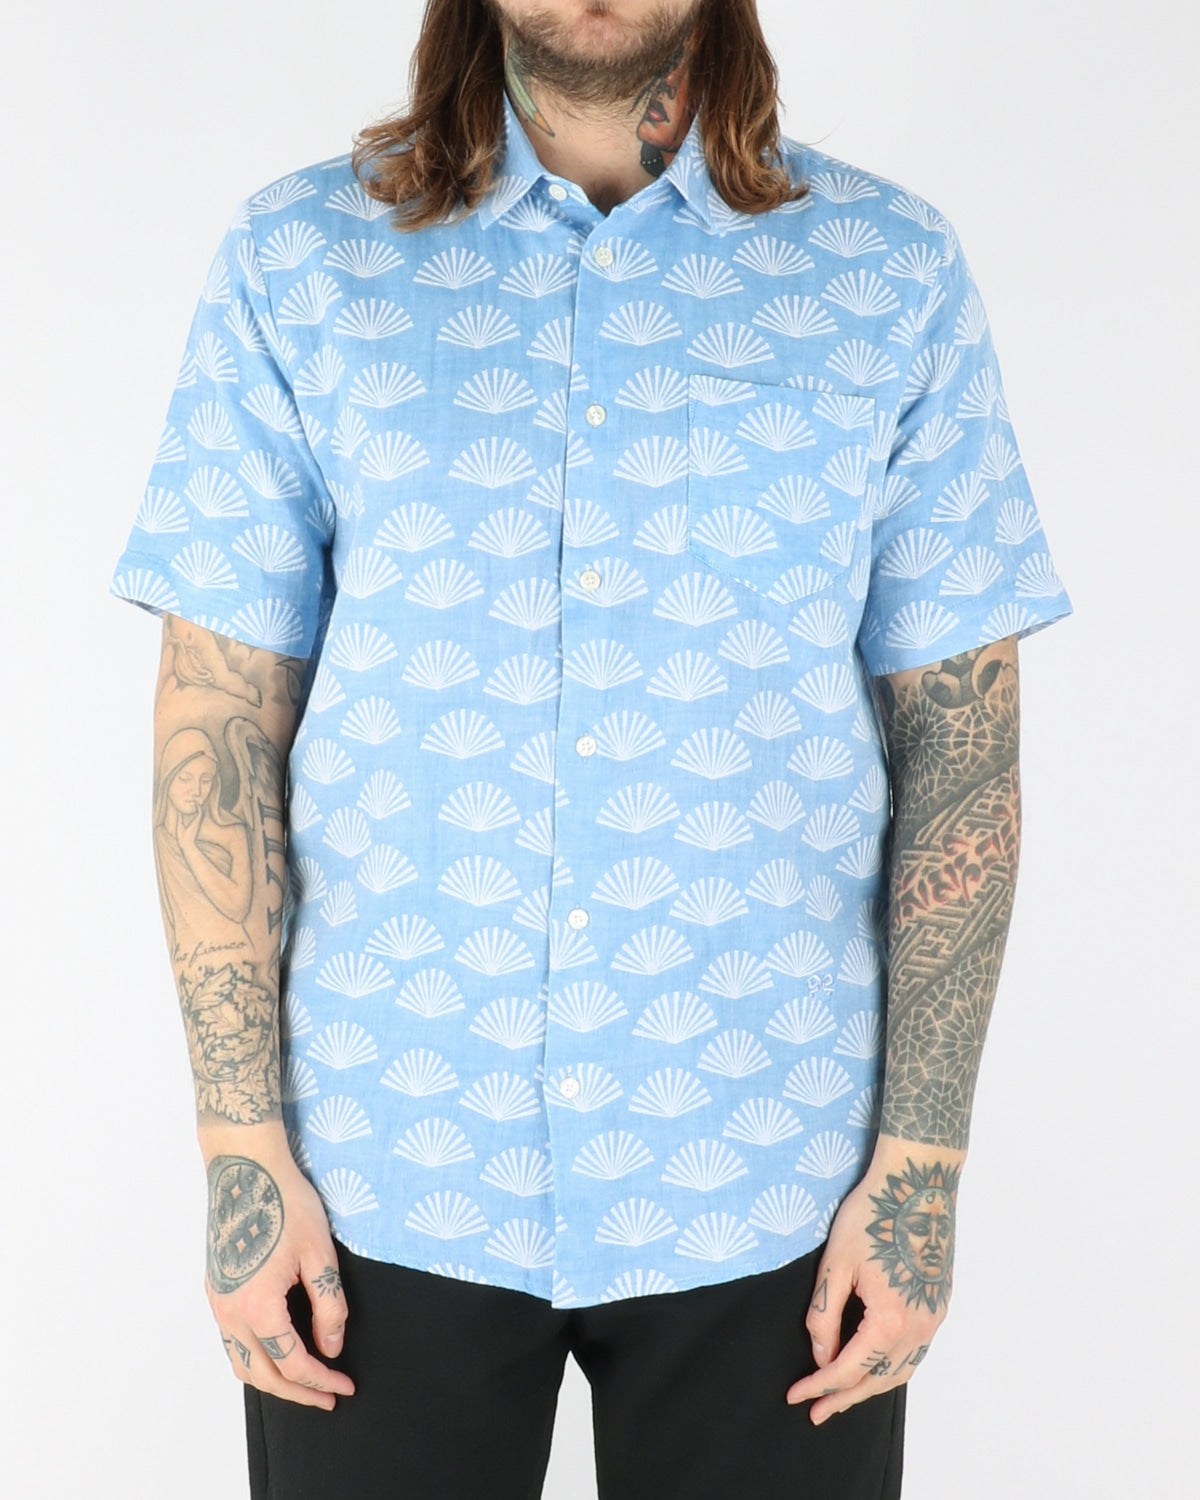 soulland_esra shirt_blue white_view_1_3